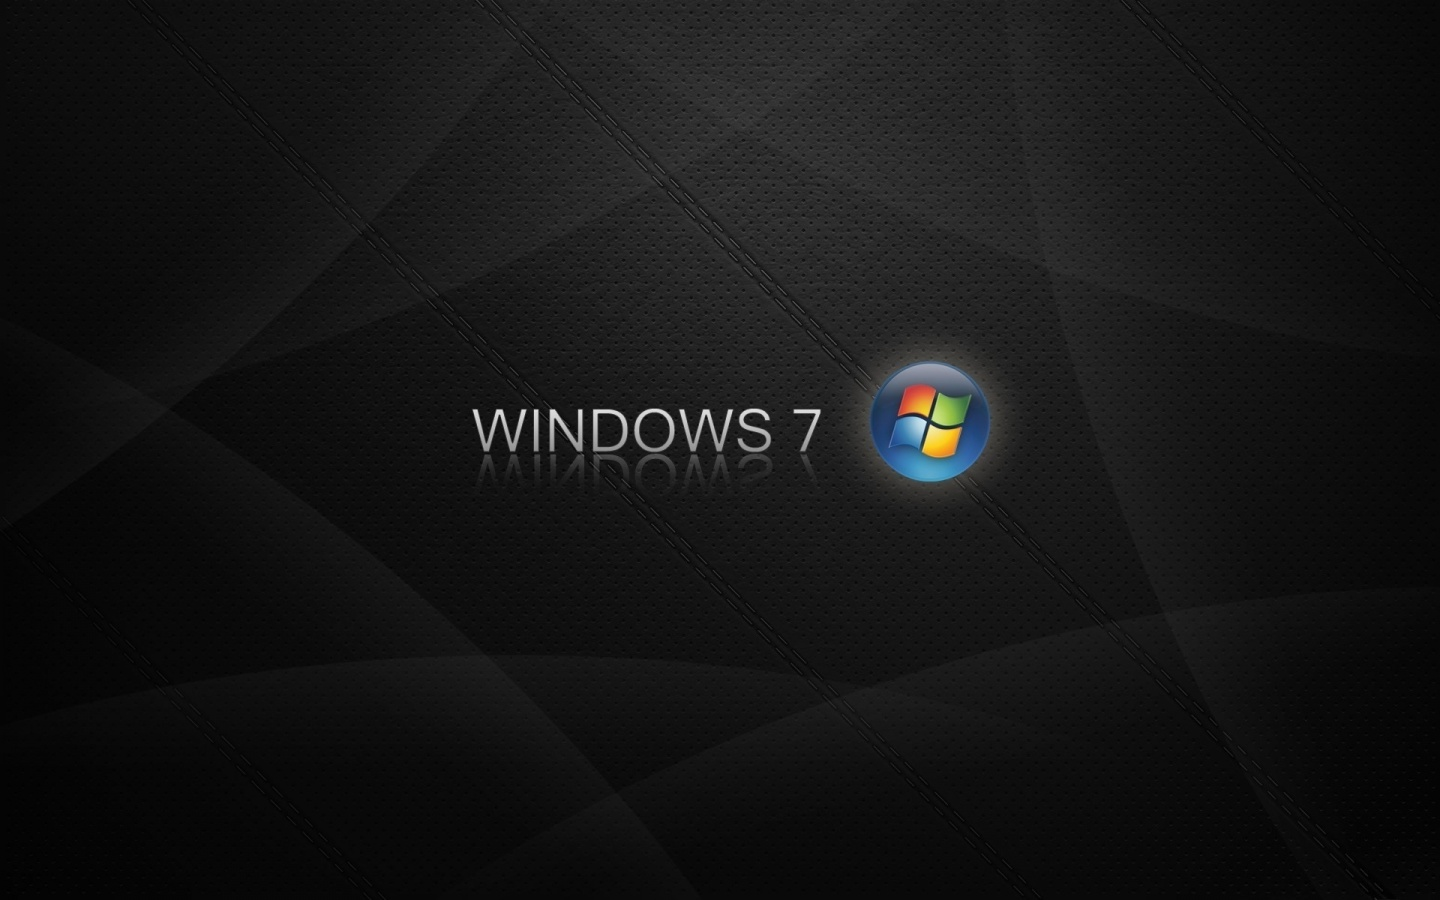 apple desktop wallpaper windows 7 - photo #27